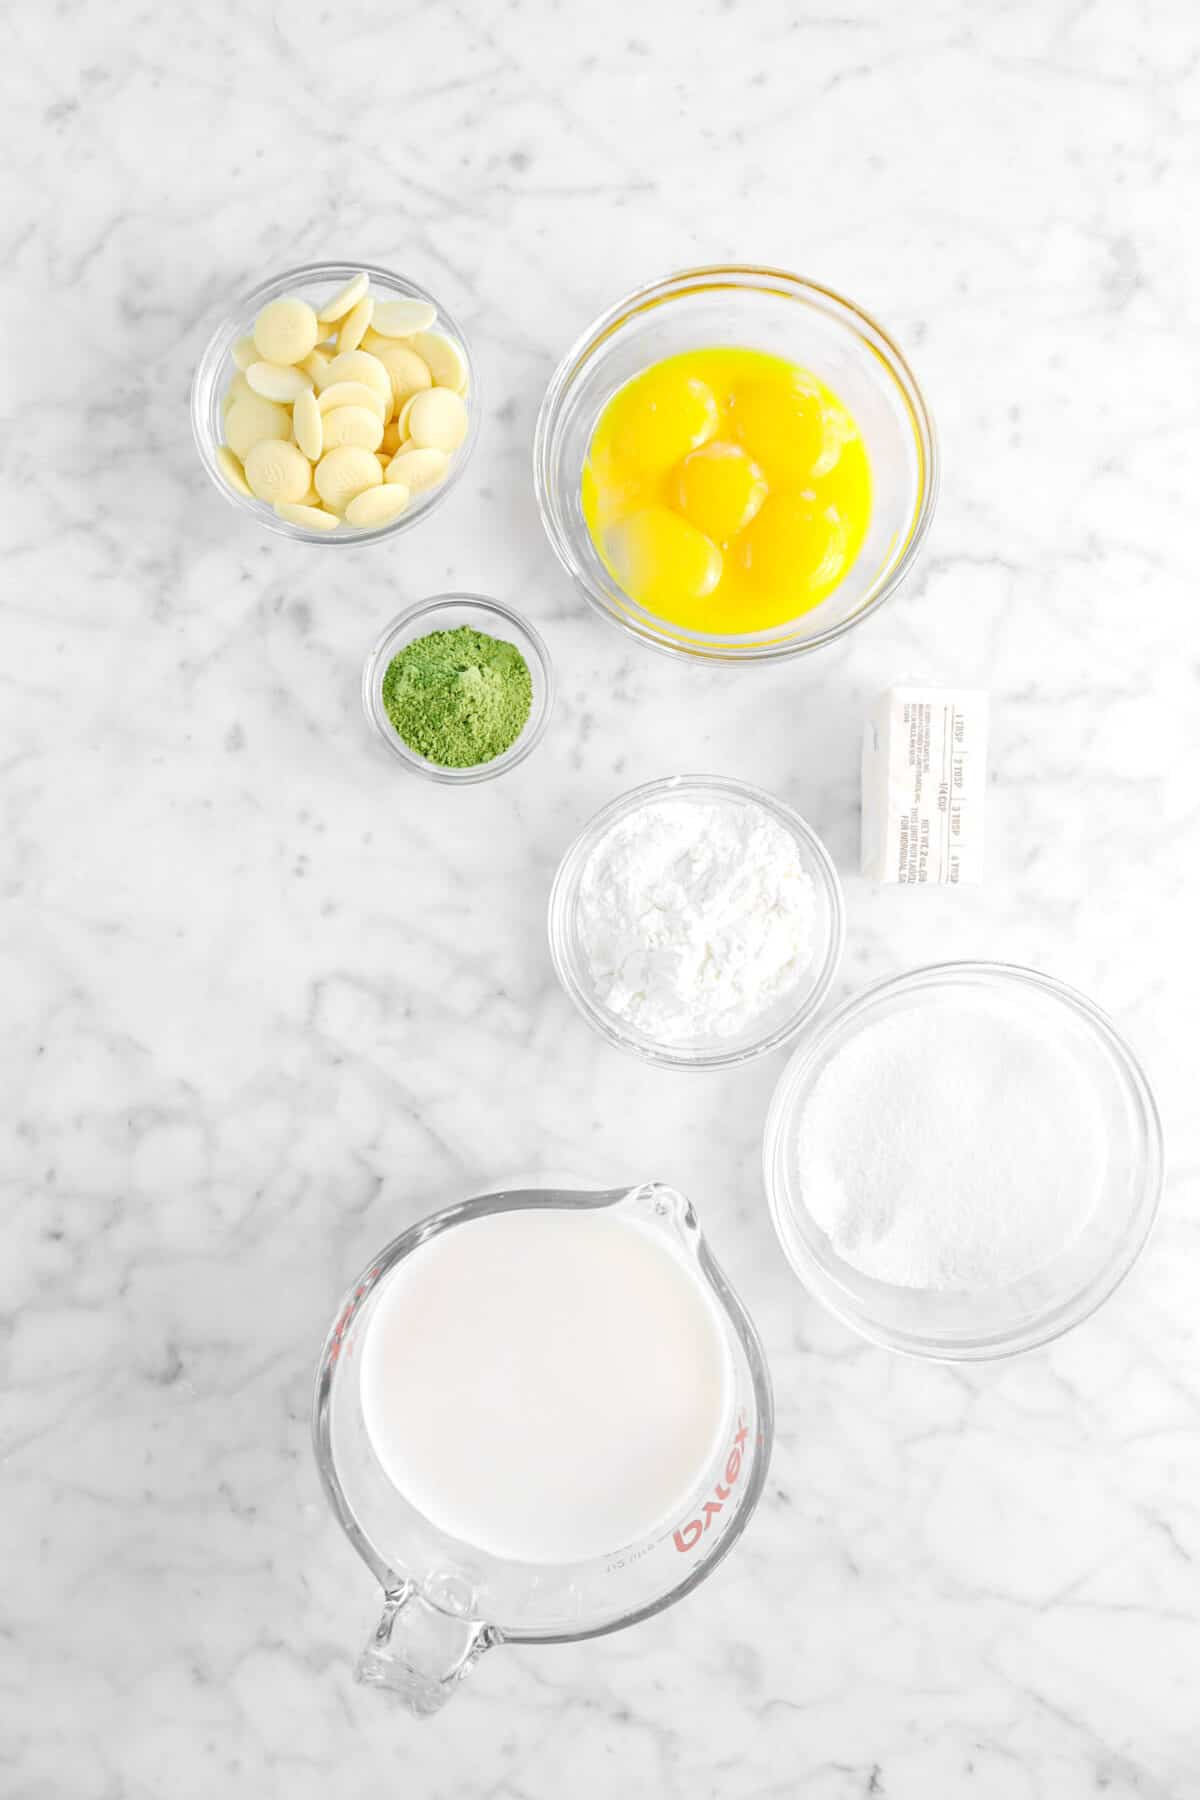 white chocolate, egg yolks, matcha, butter, corn starch, sugar, and milk on marble counter